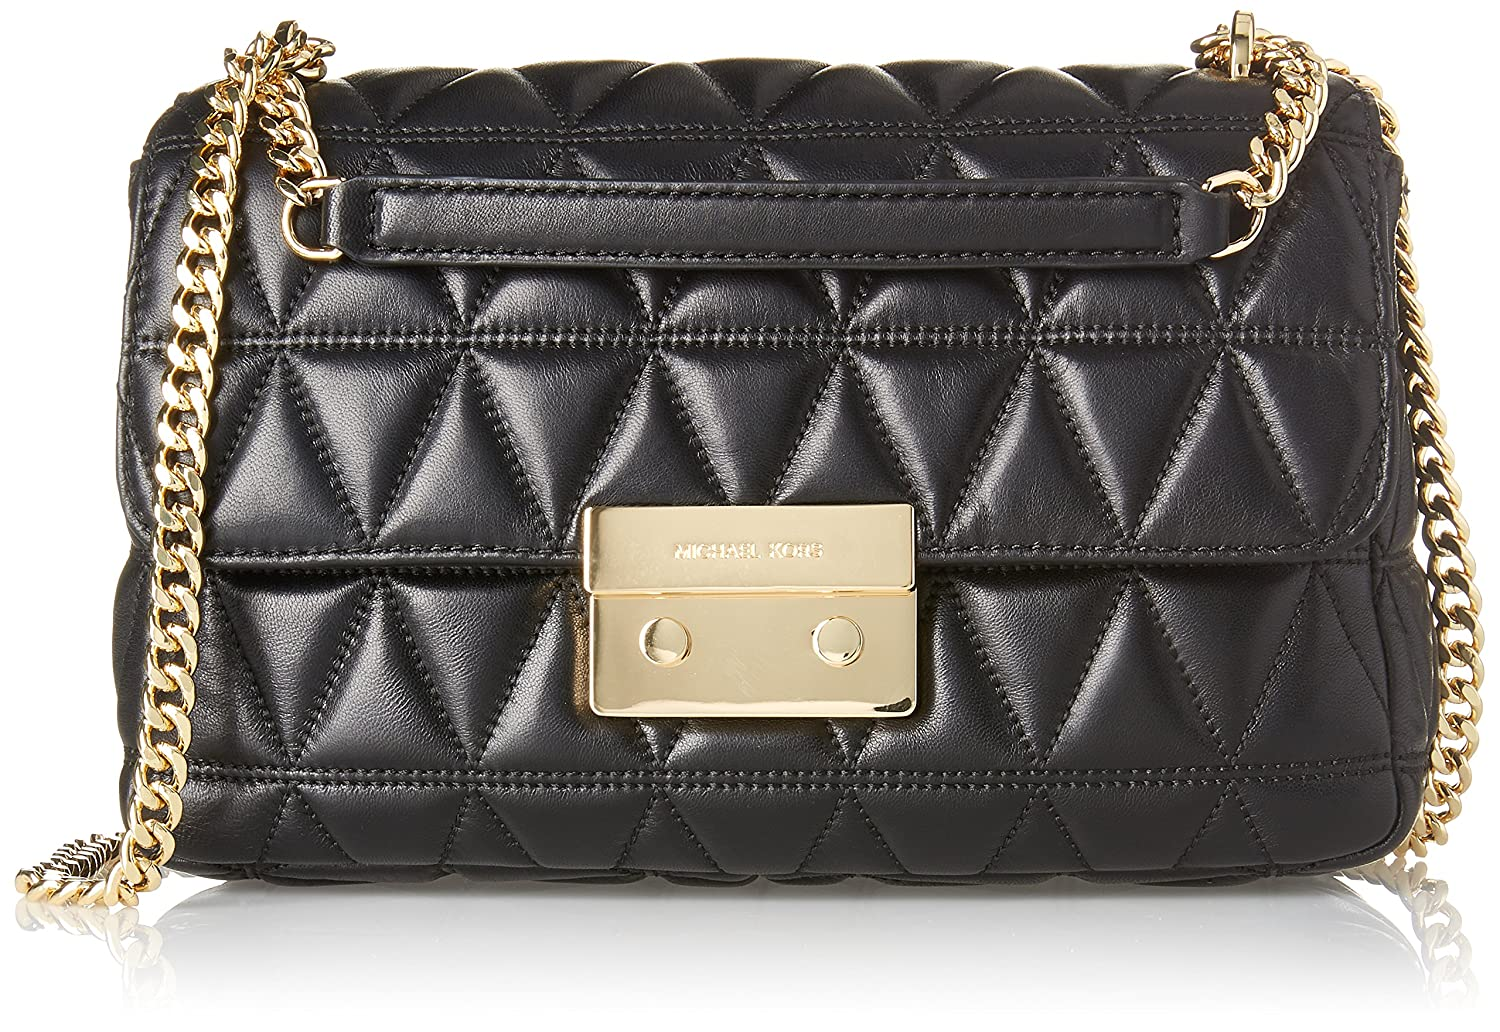 e771ca84169 ... MICHAEL KORS Sloan Black Large Quilted Shoulder Bag  Black quilted  leather Gold tone hardware Leather strap with chain Front clasp fastening  100% ...